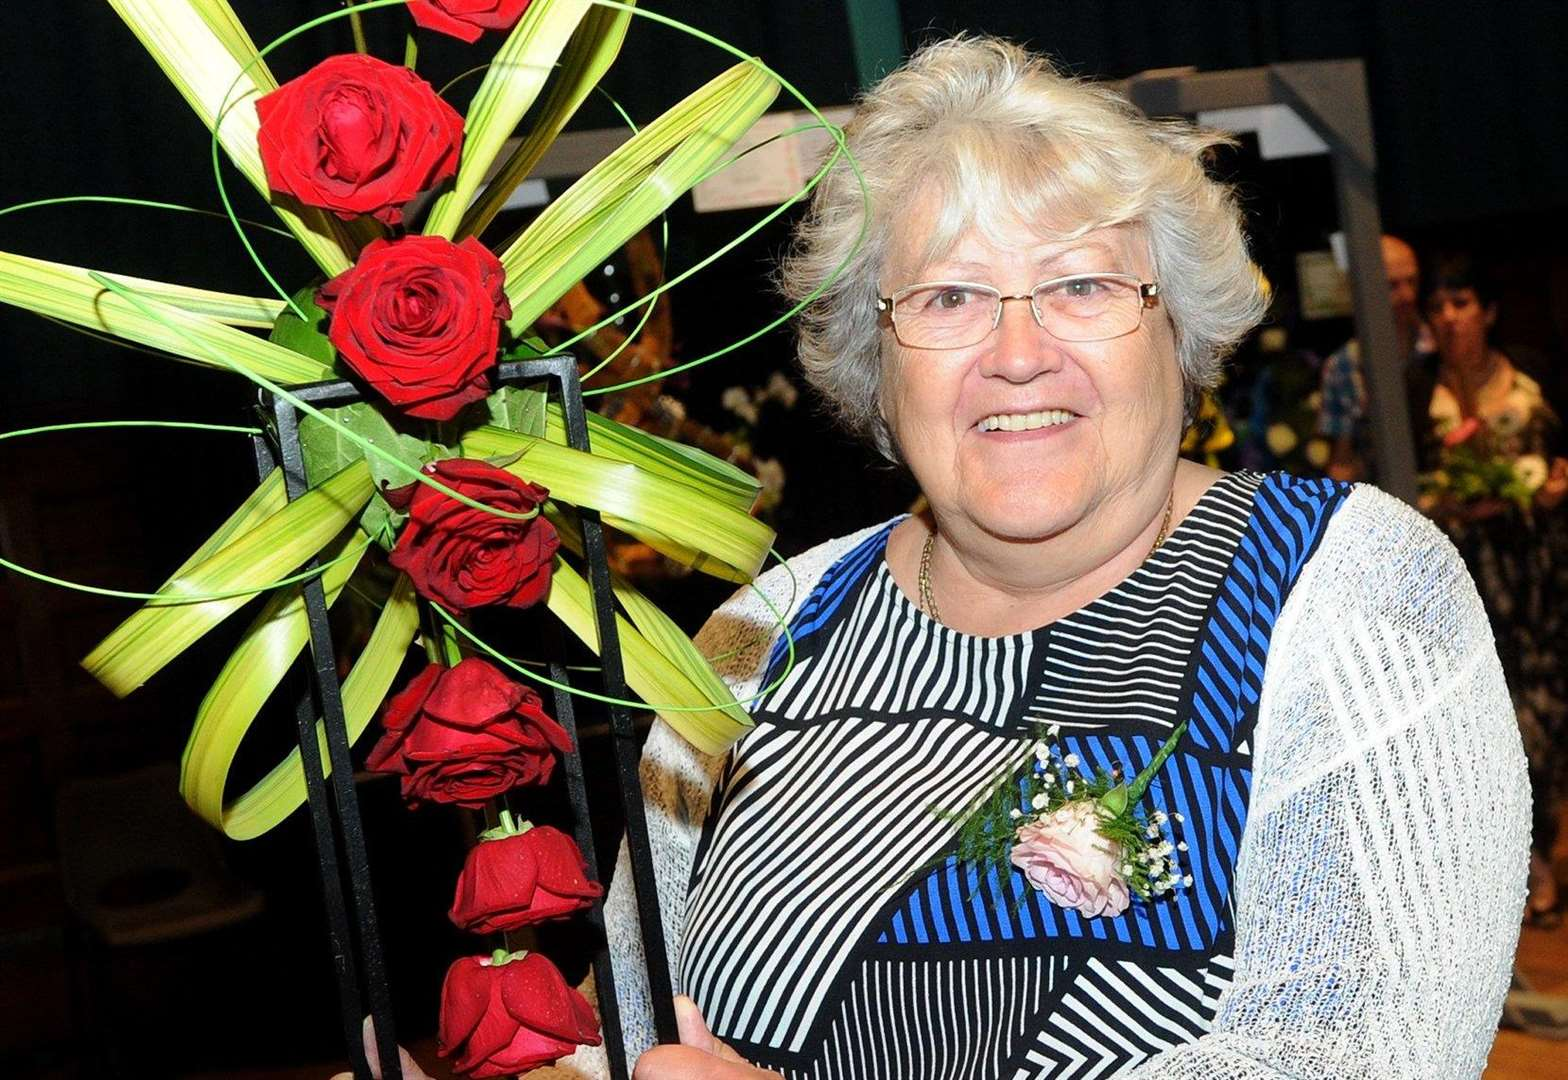 Haverhill & District Flower Club to host its annual Flower Show